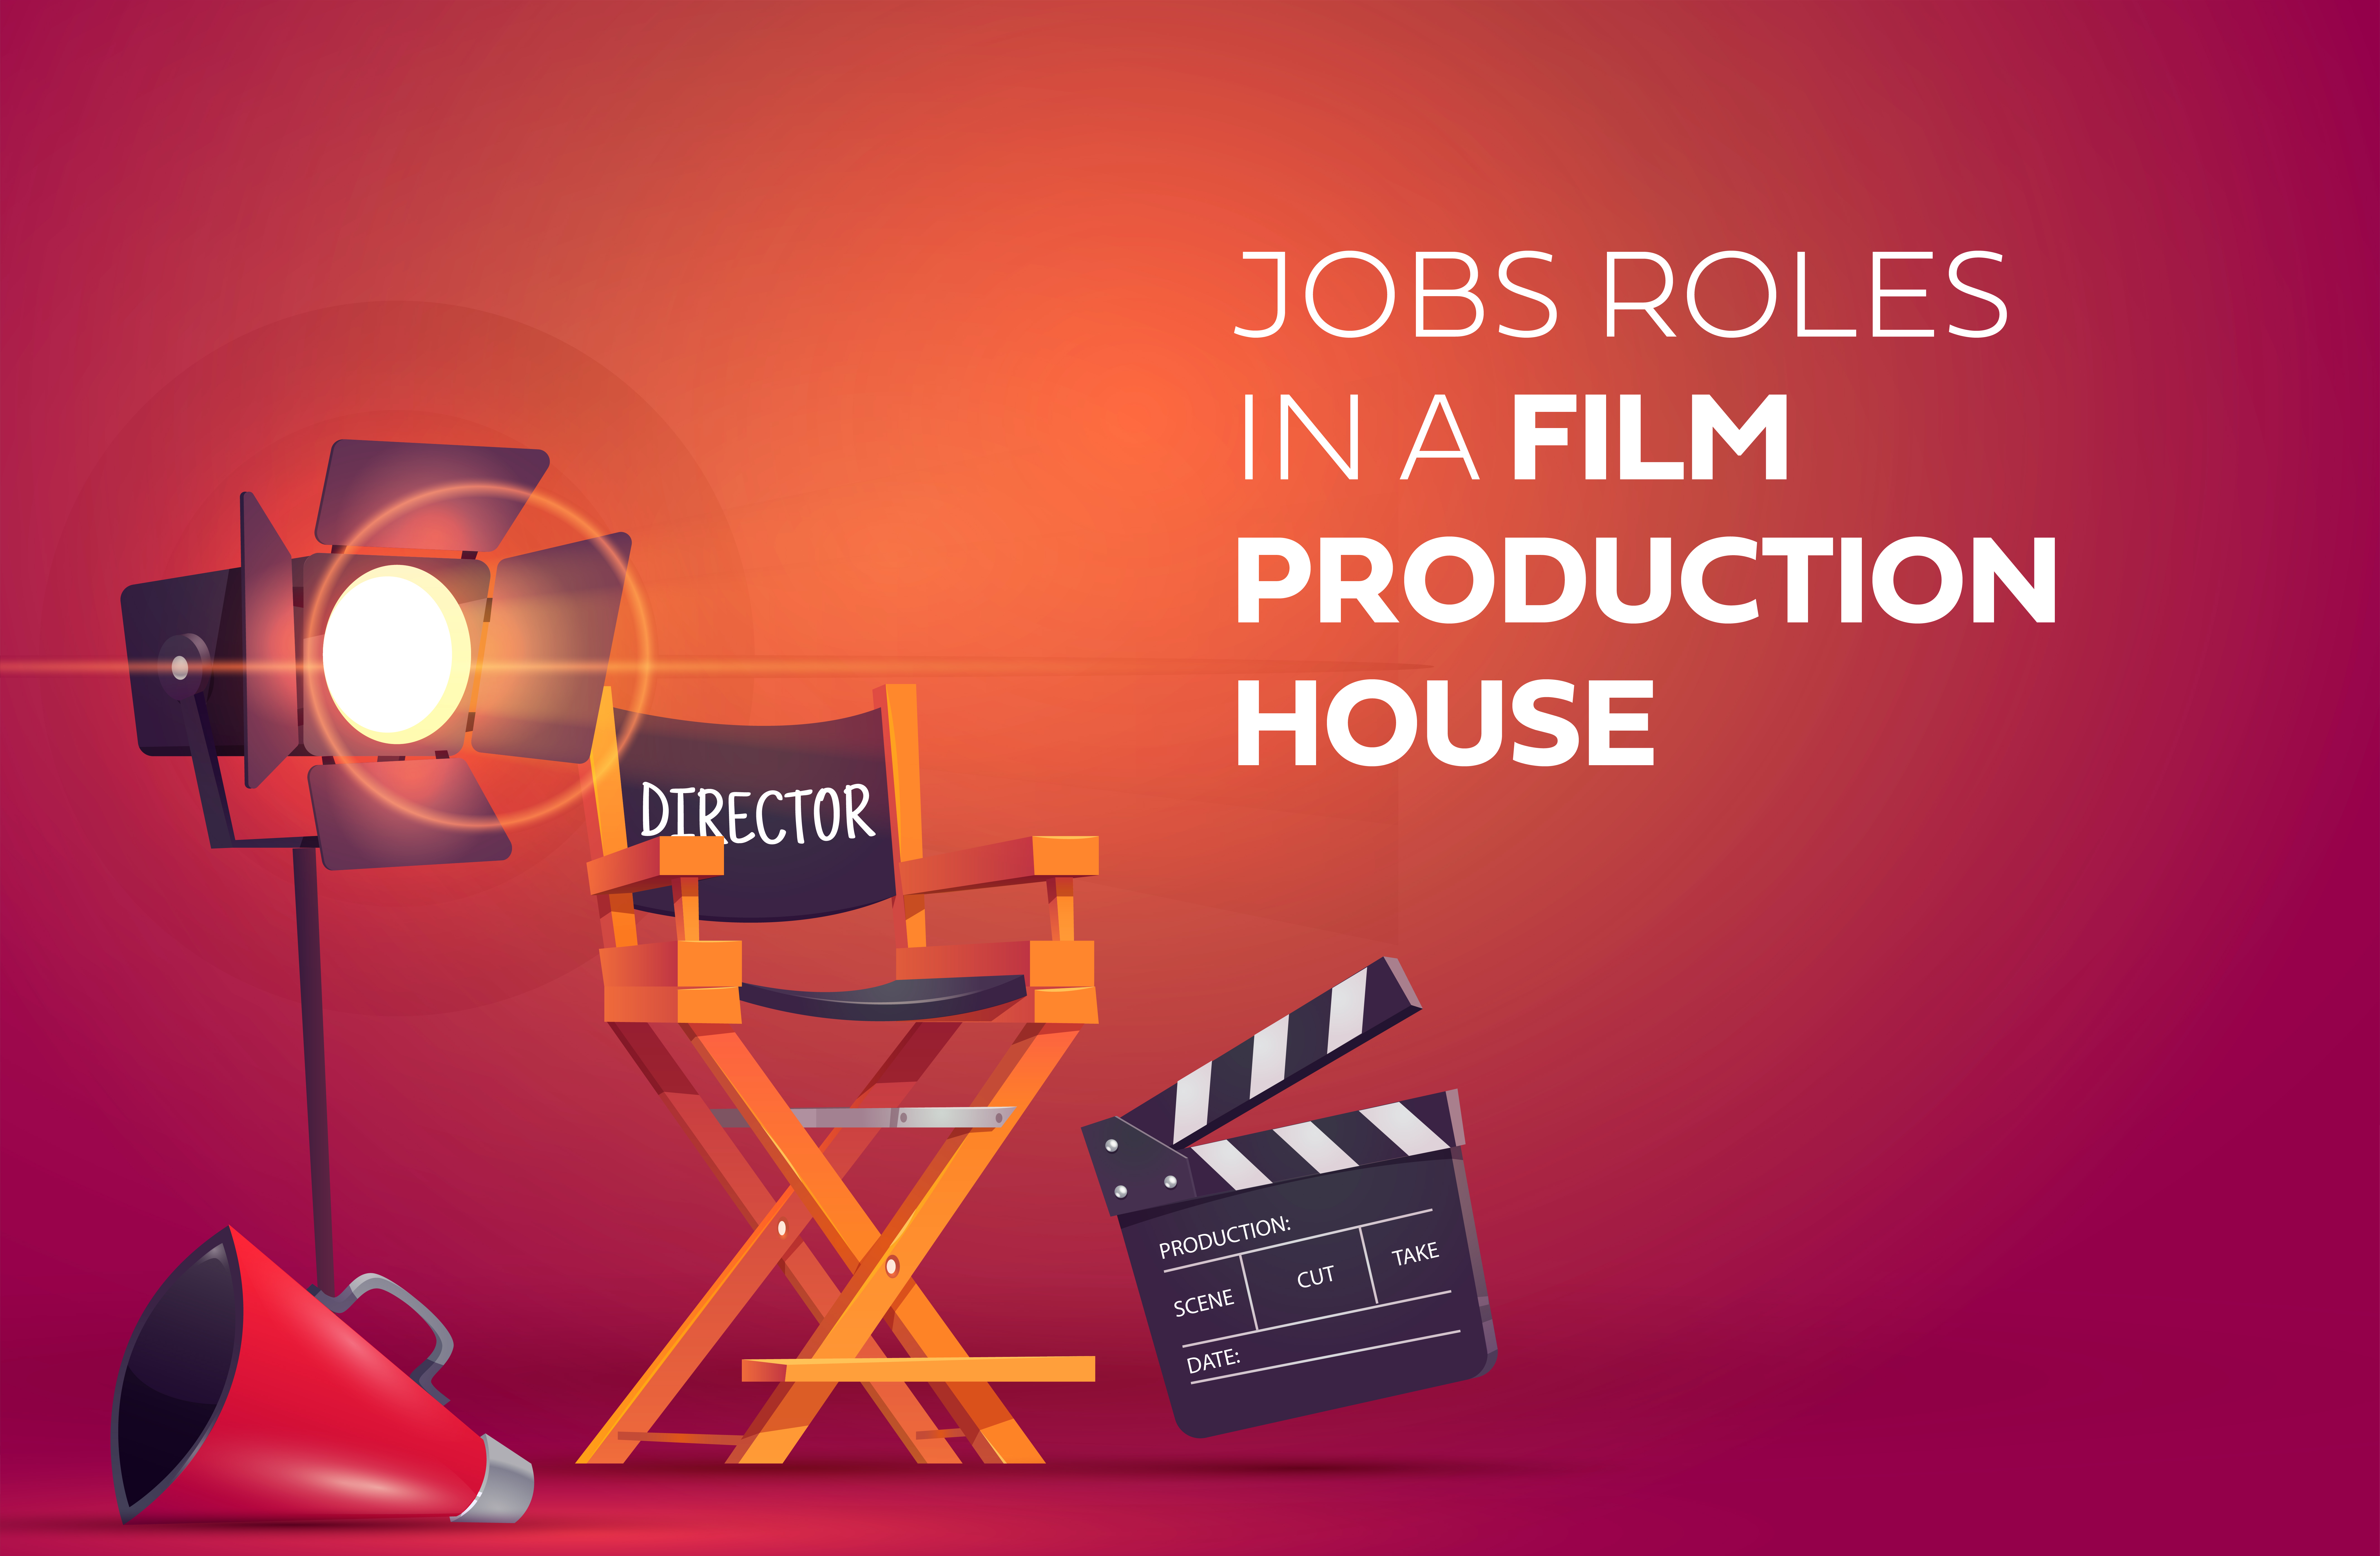 Staff Categories Of A Film Production House